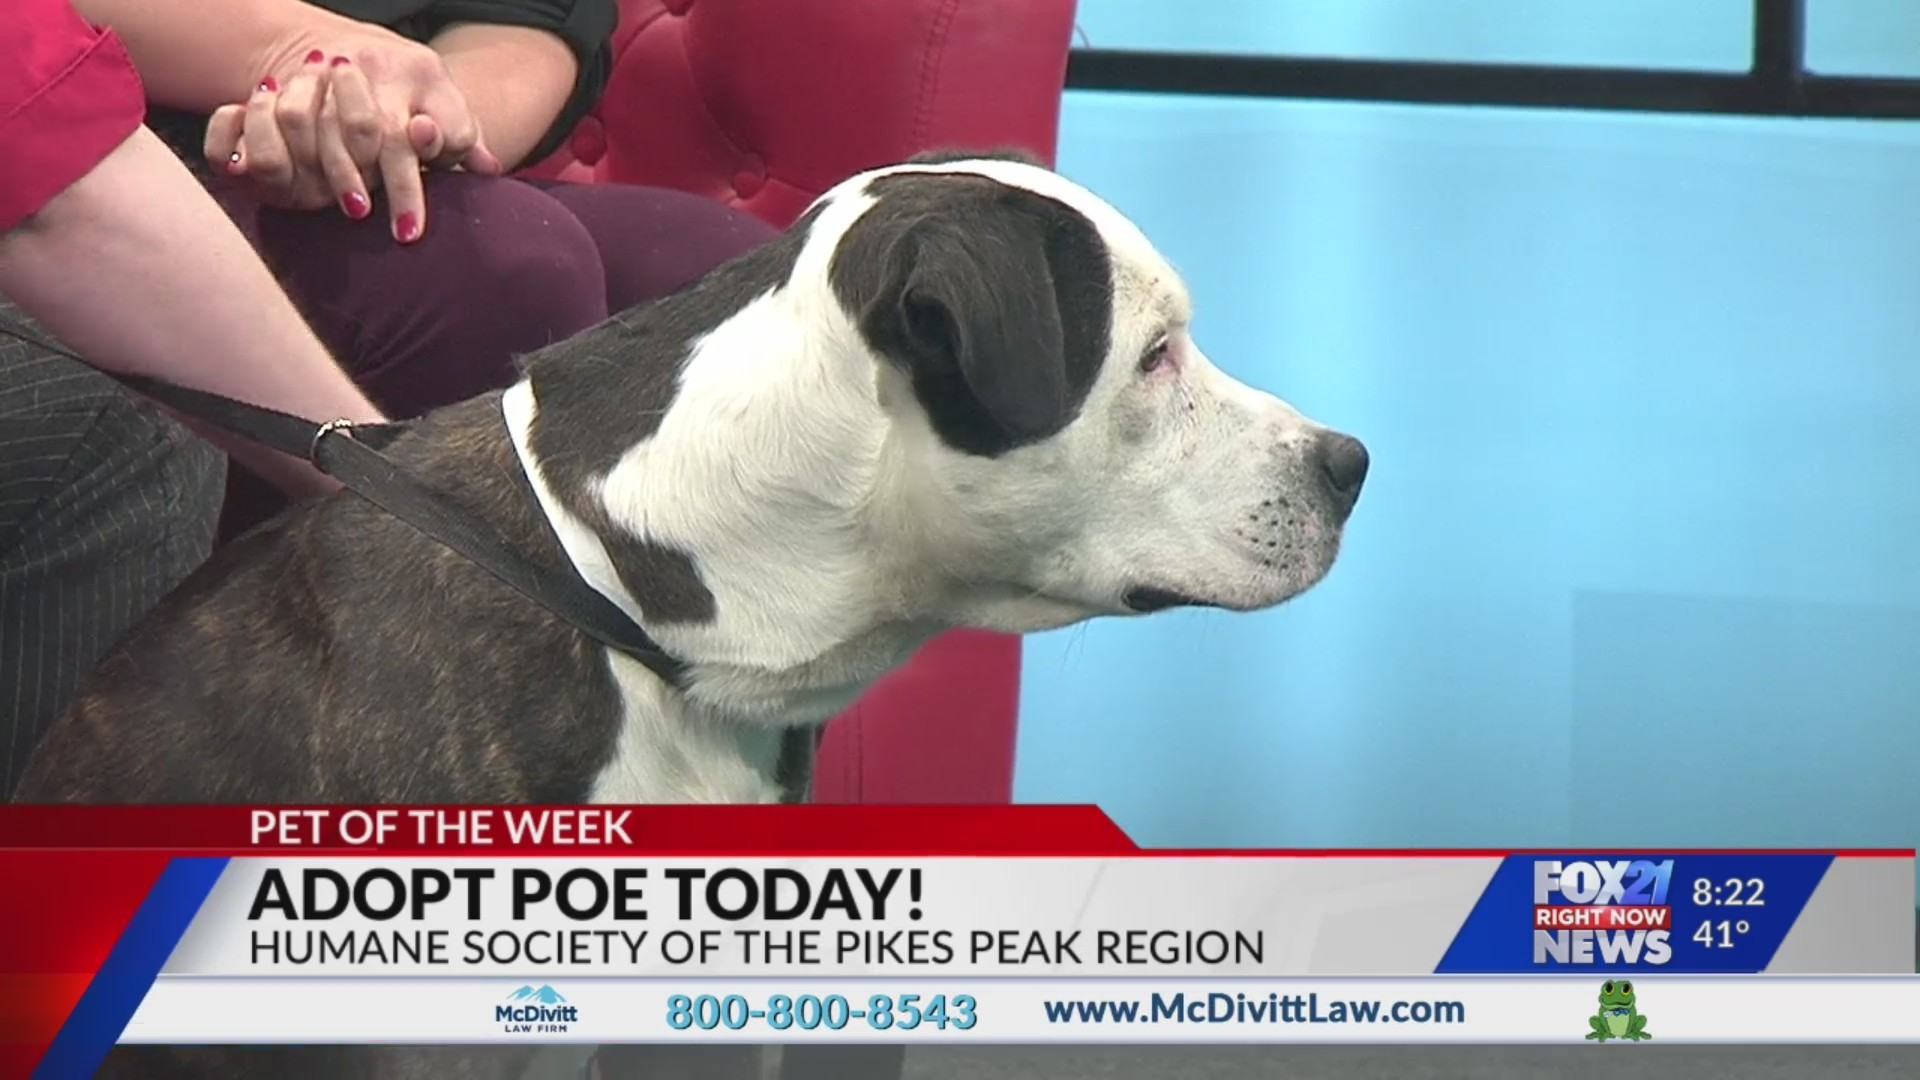 May 29 Pet of the Week: Poe